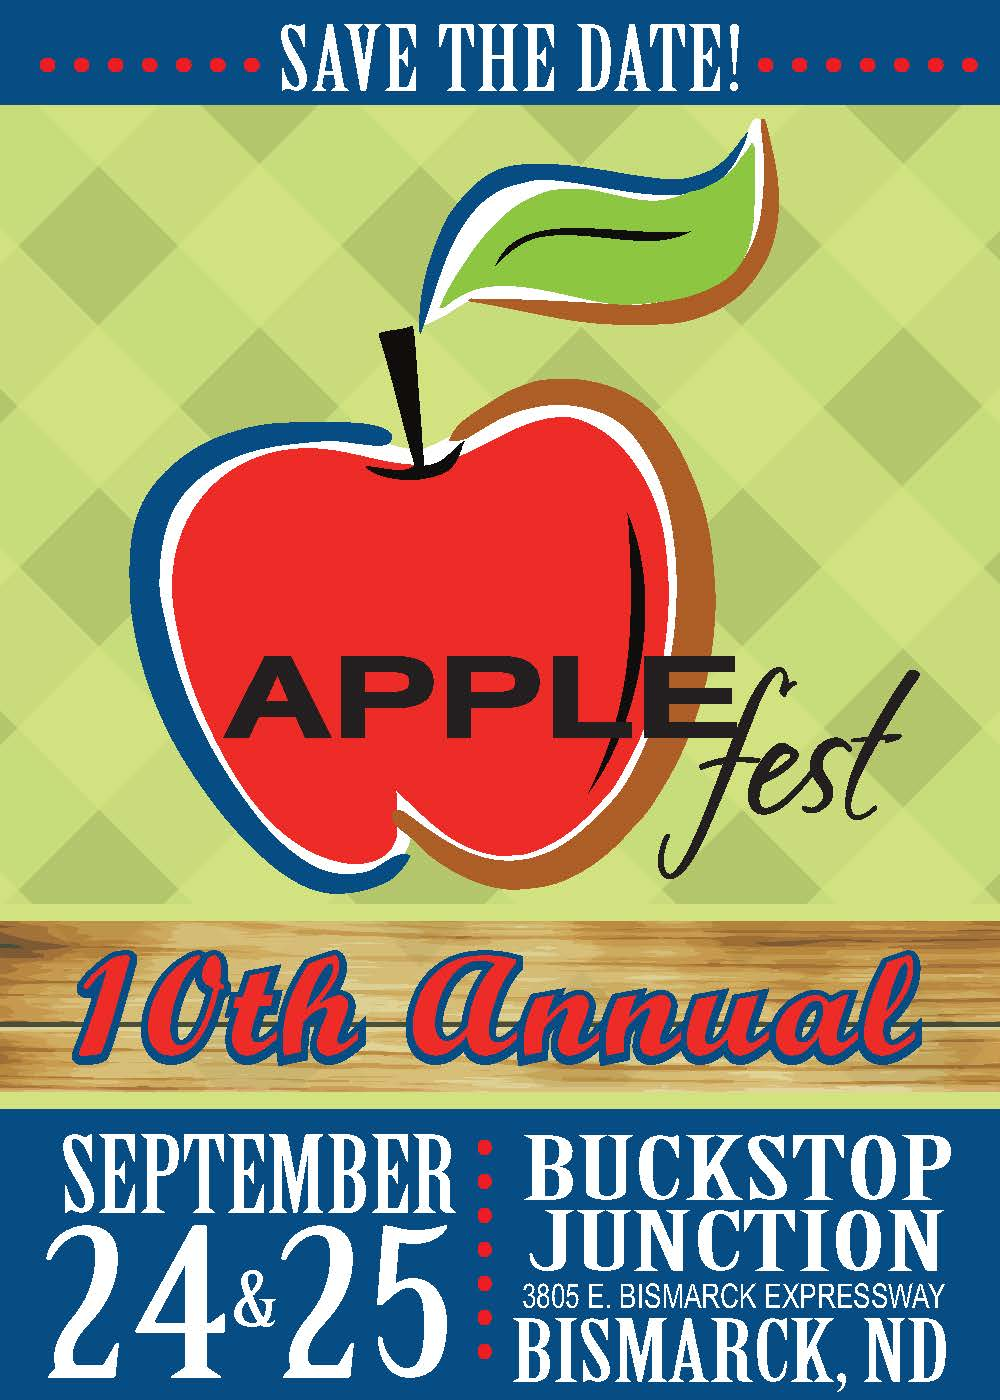 Applefest save the date graphic